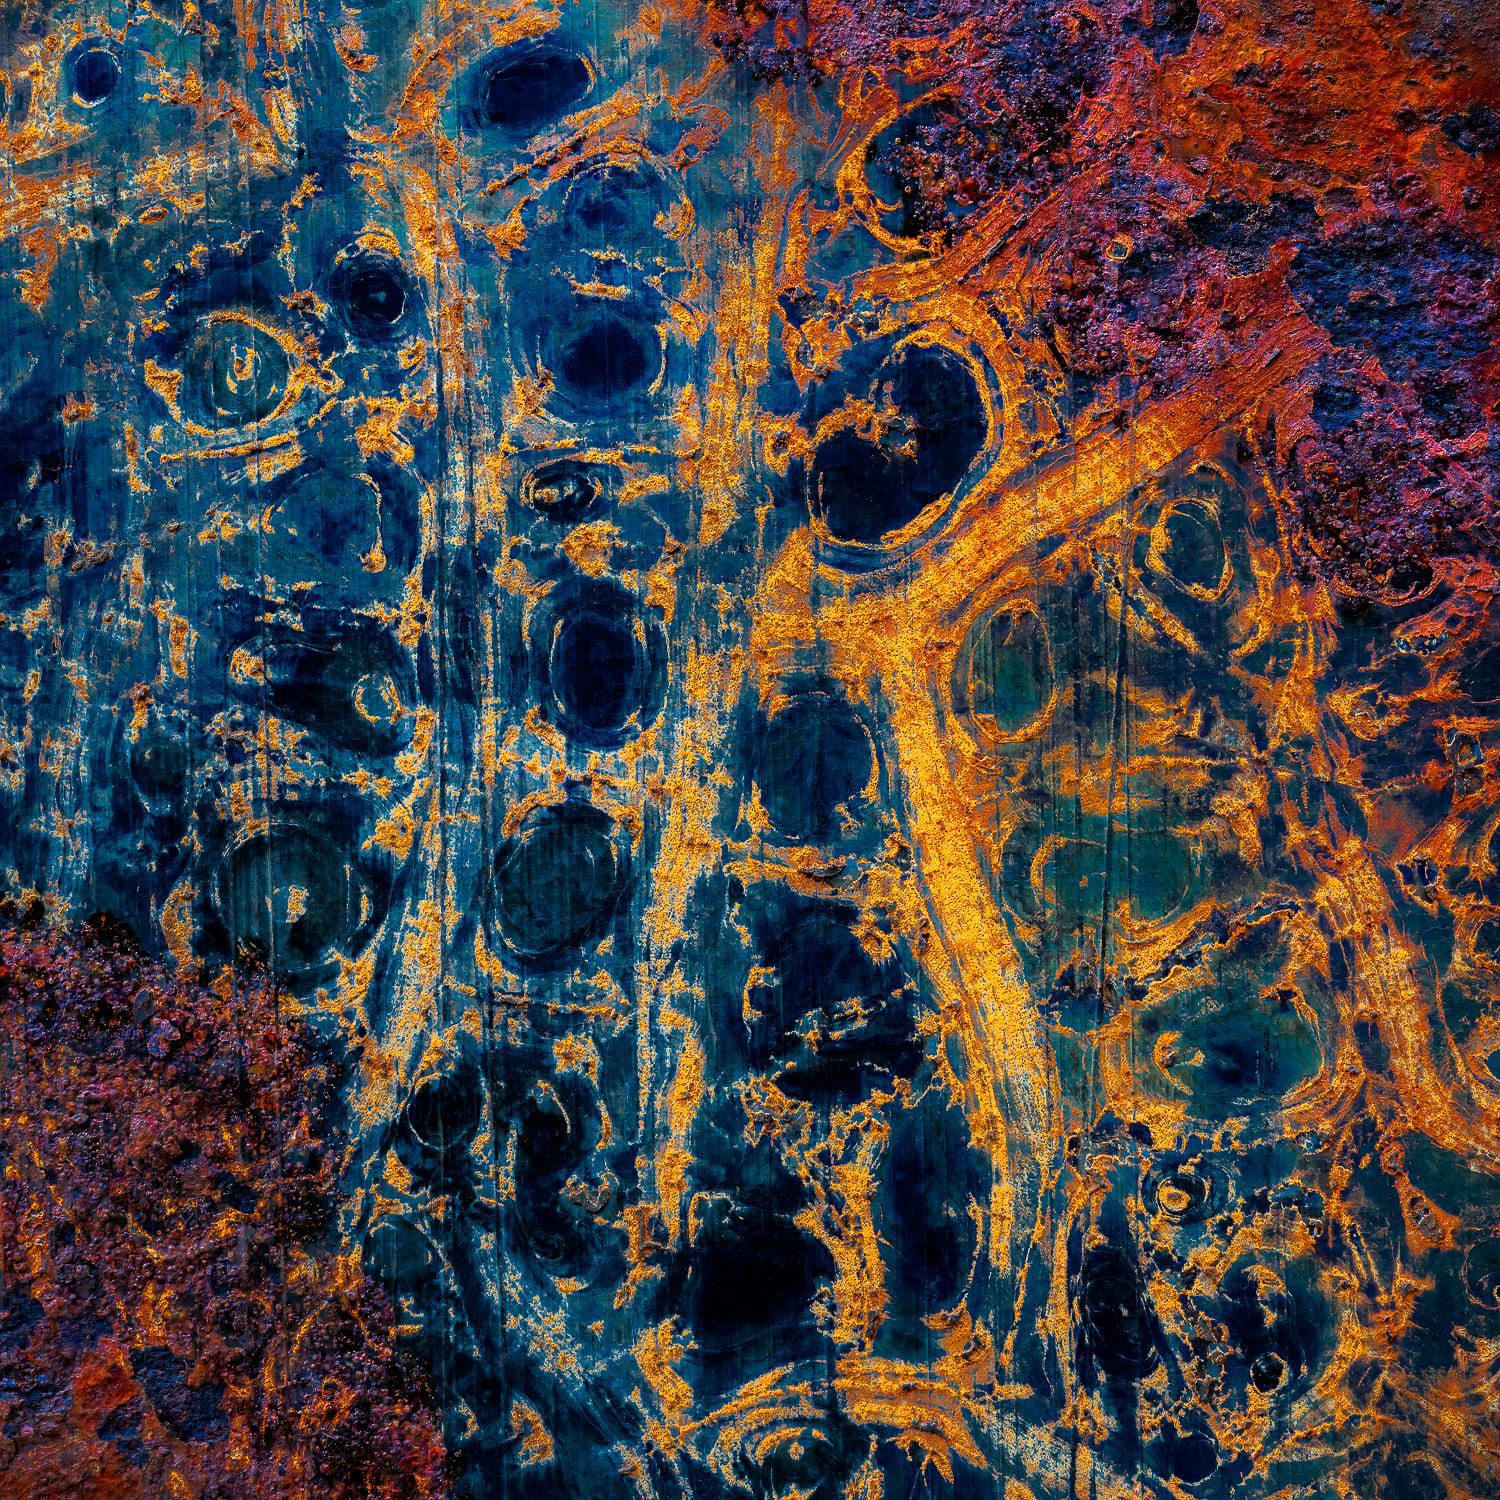 Abstract blue and orange art